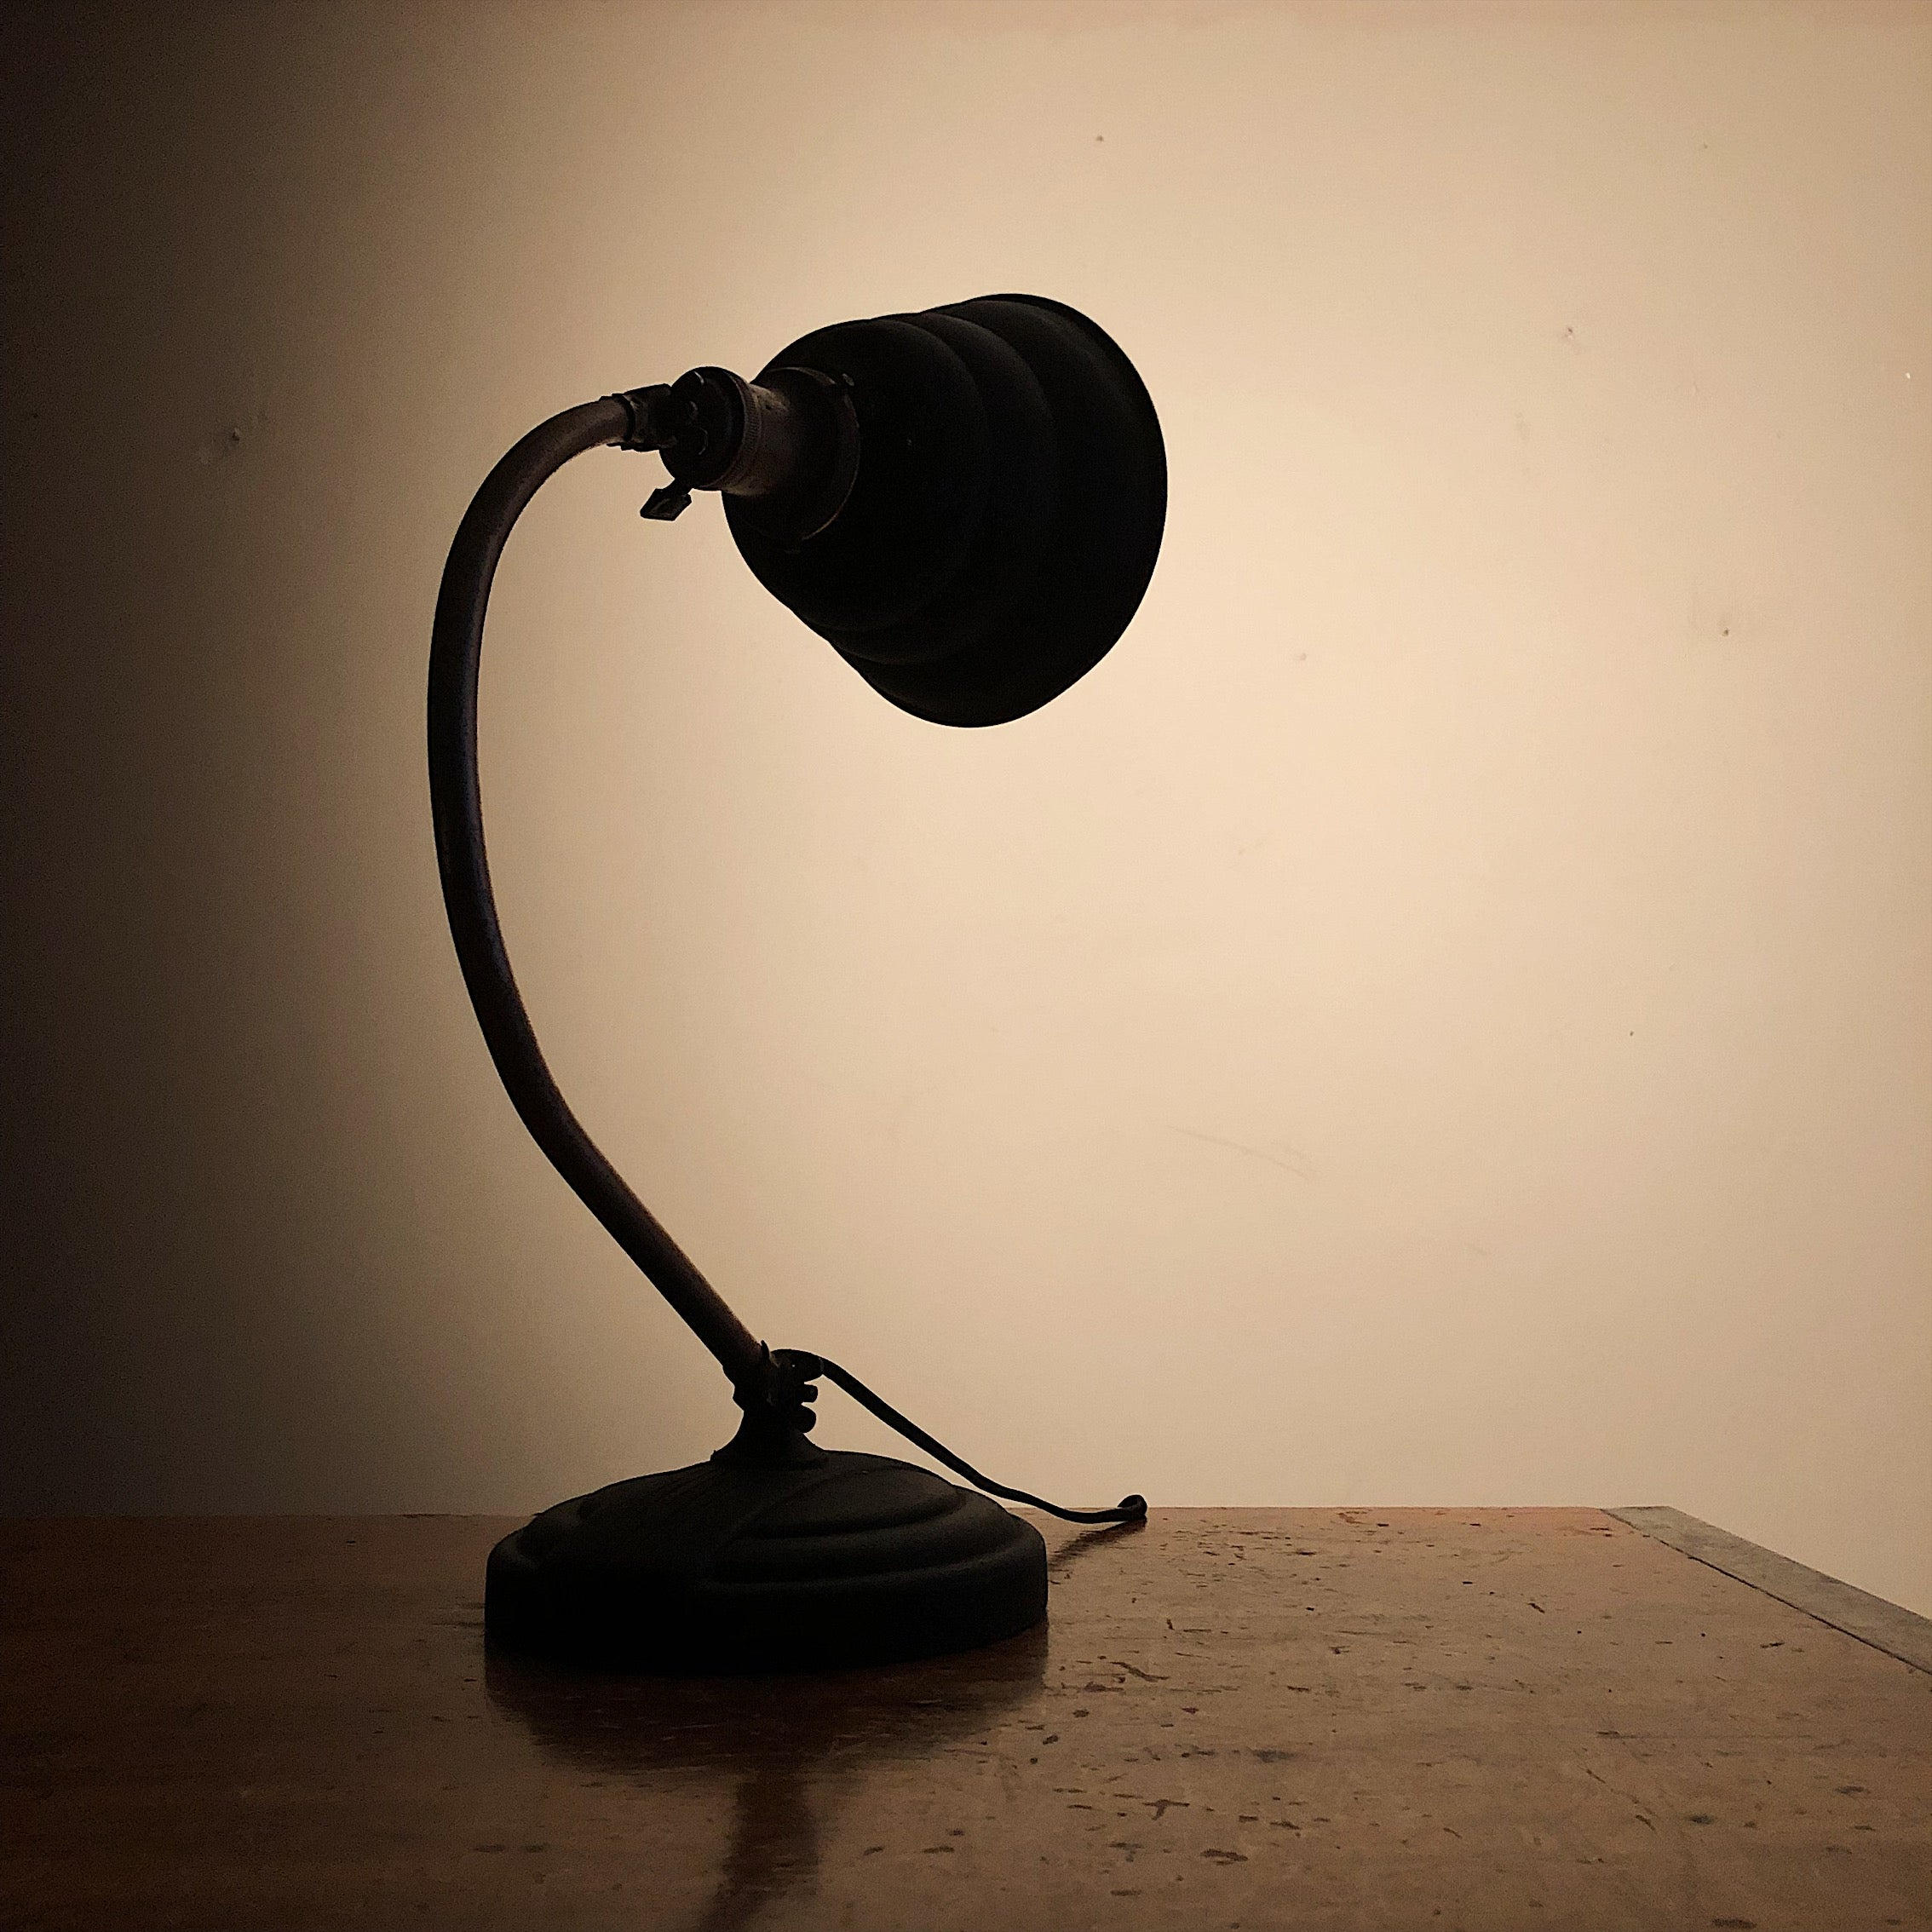 Vintage Industrial Articulating Desk Lamp - General Electric - Rare Art Deco Light - Decor - Black and Tan - Haunting